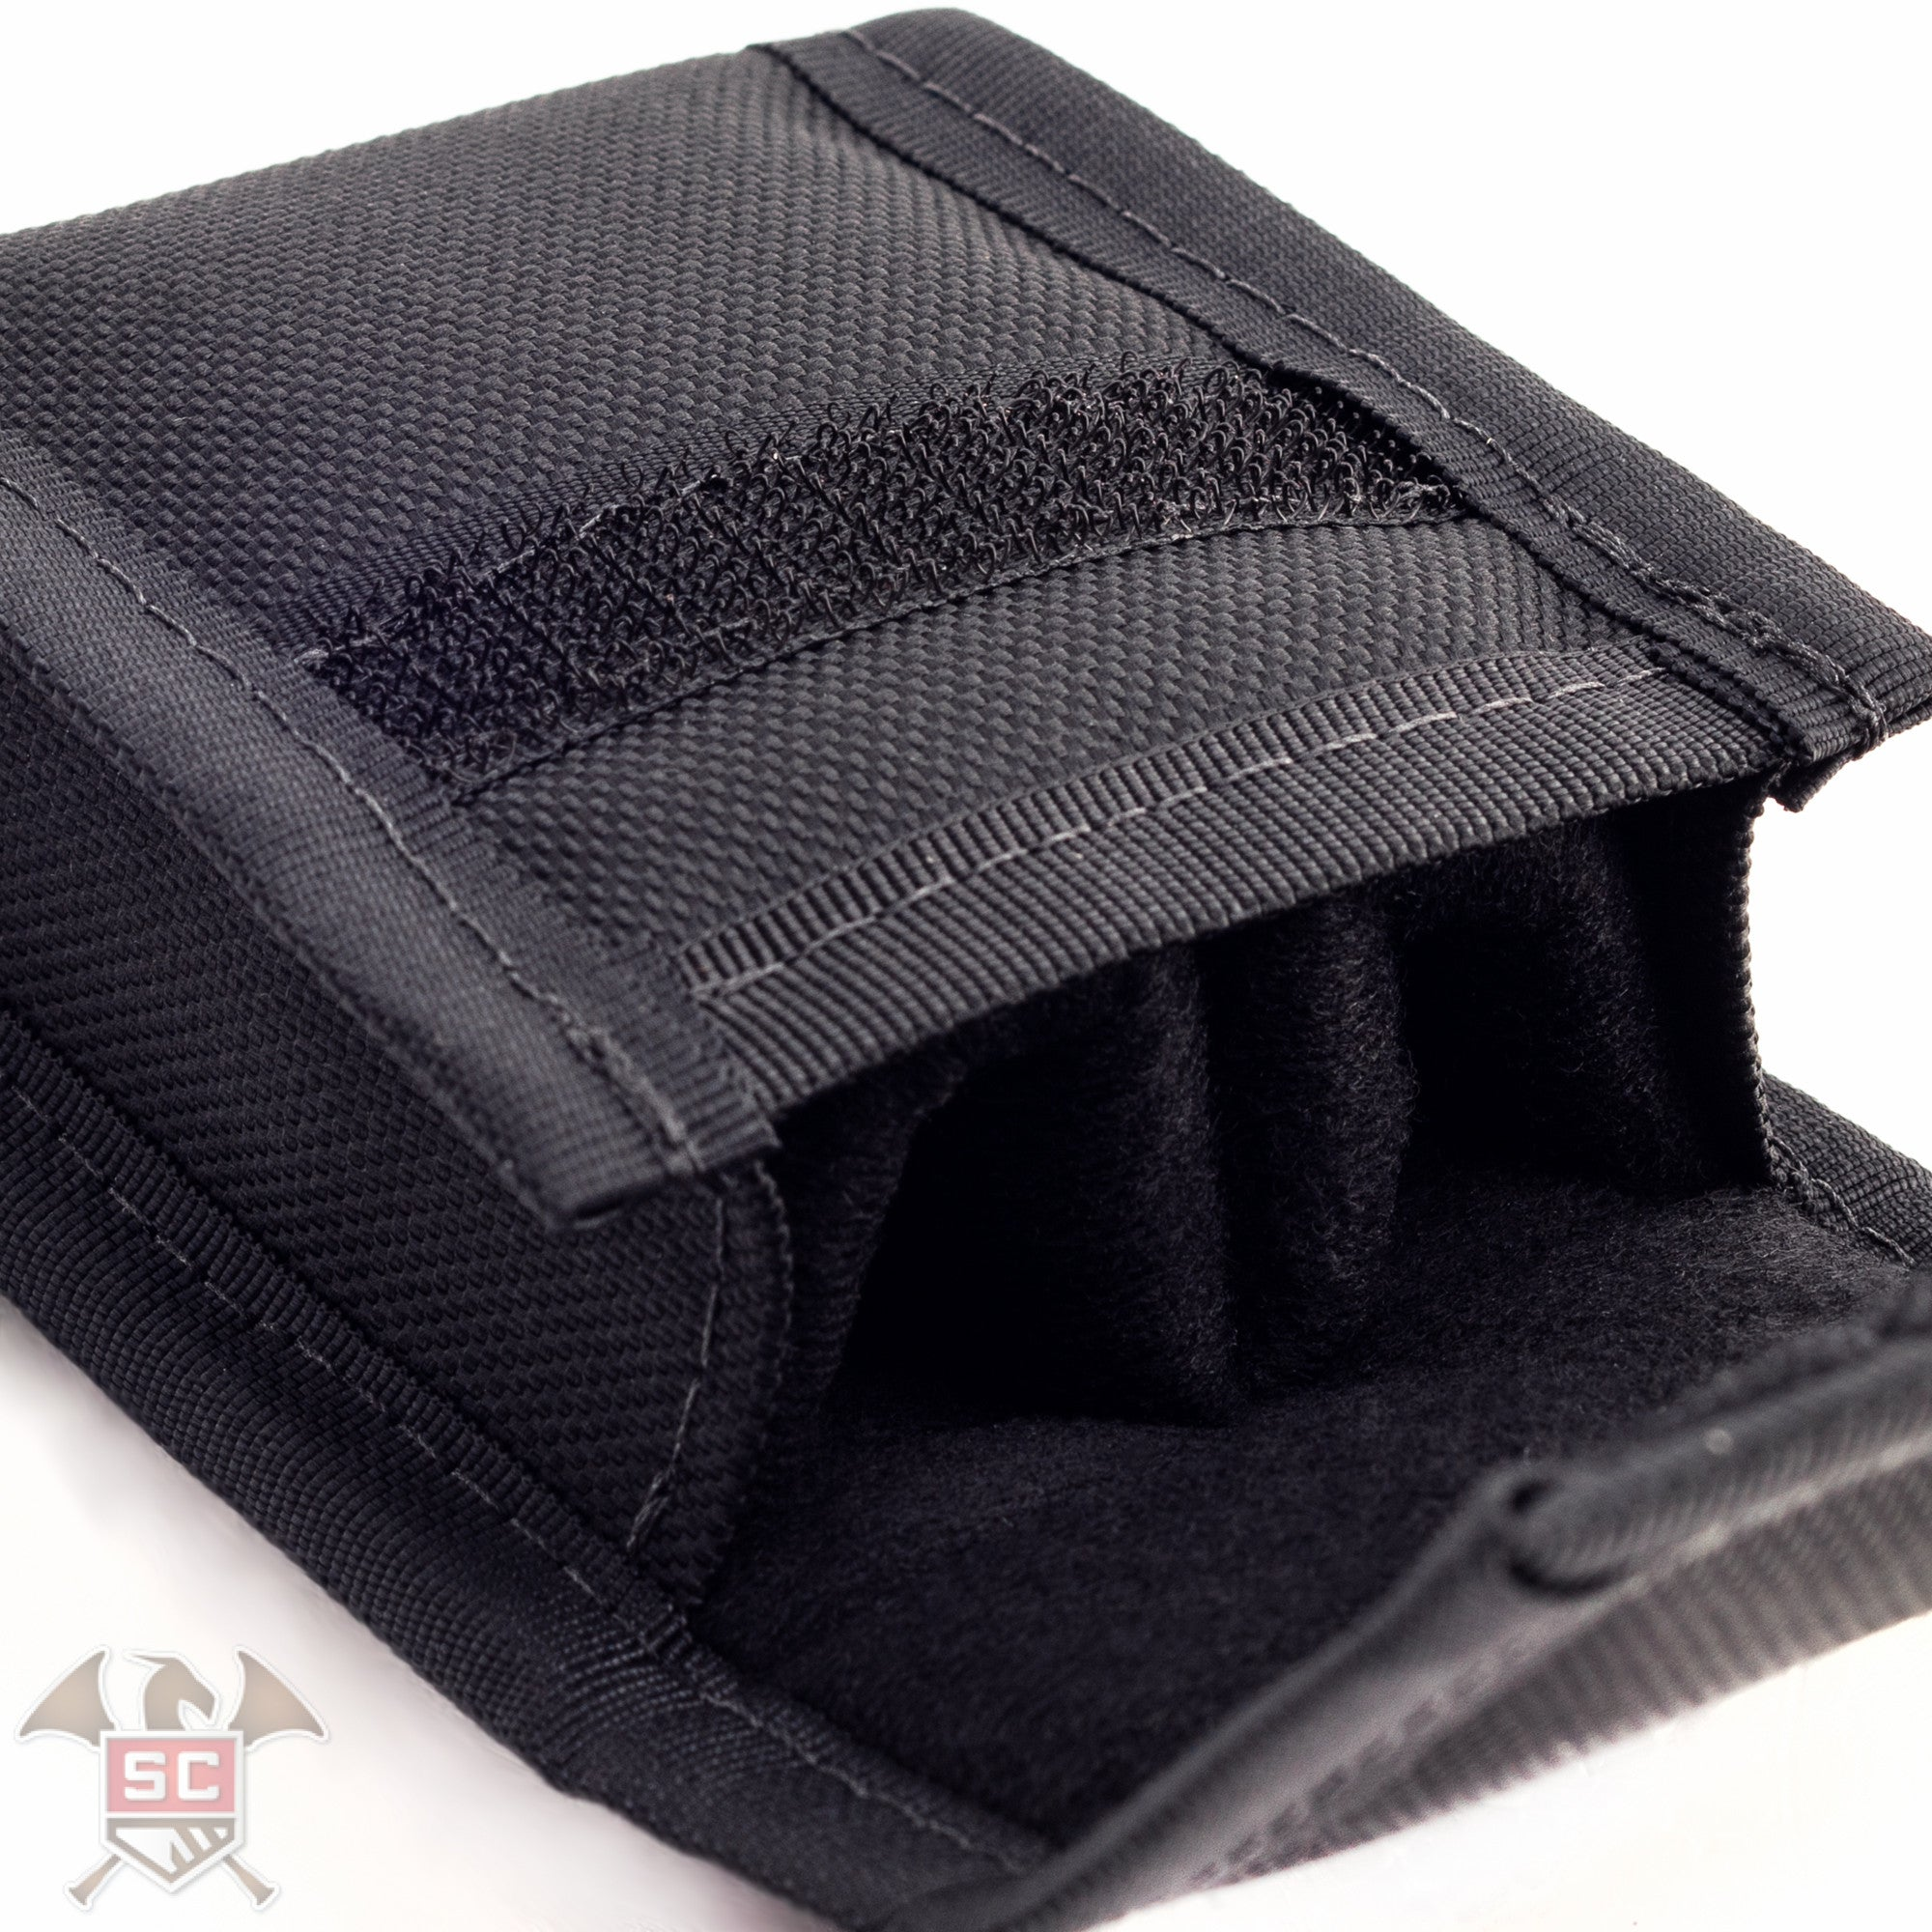 MB Triple Mouthpiece Pouch